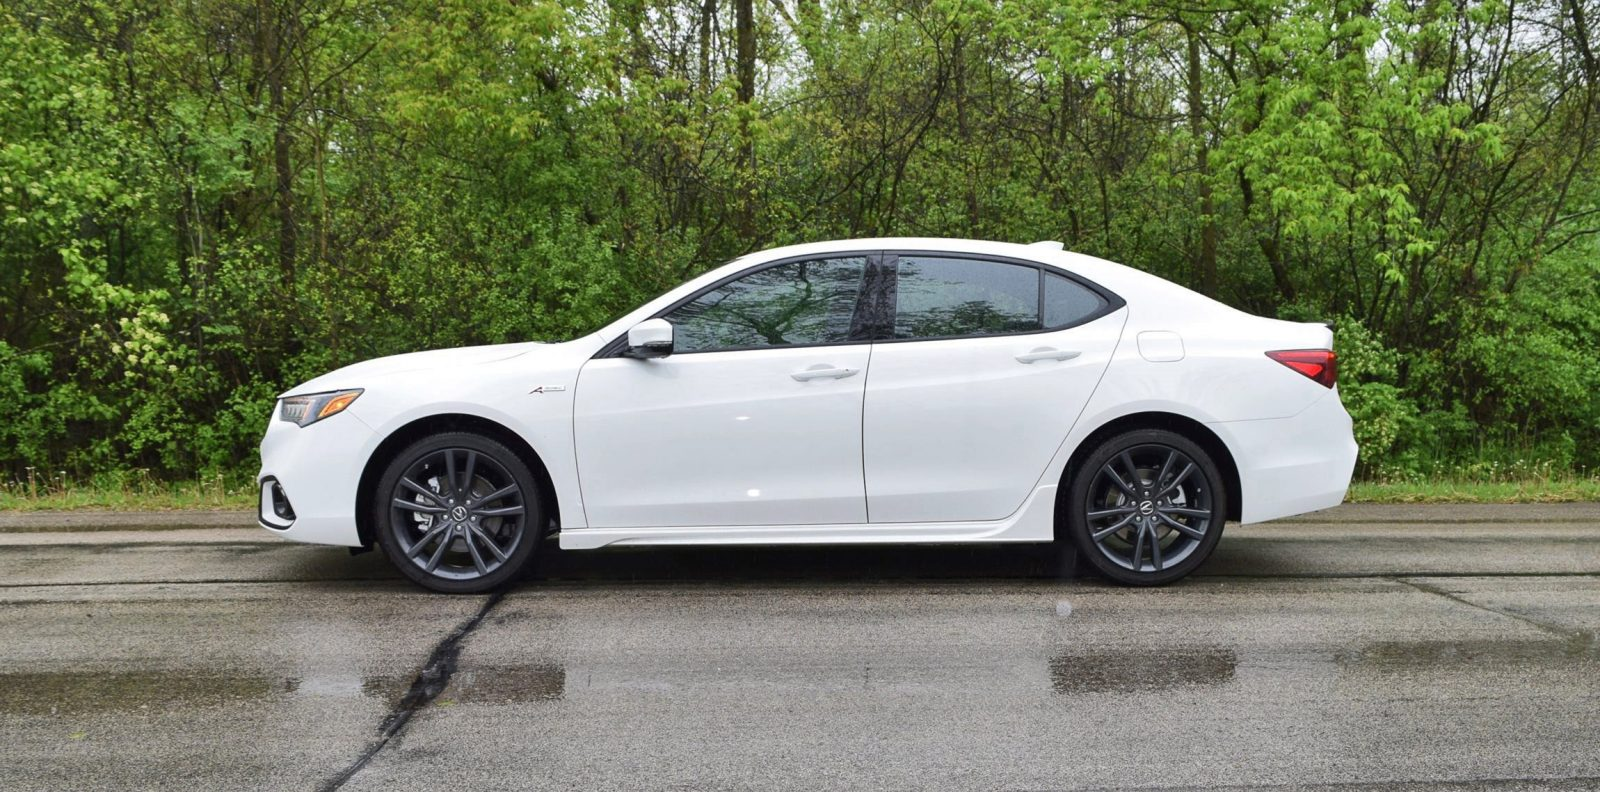 2018 Acura TLX A-Spec 10